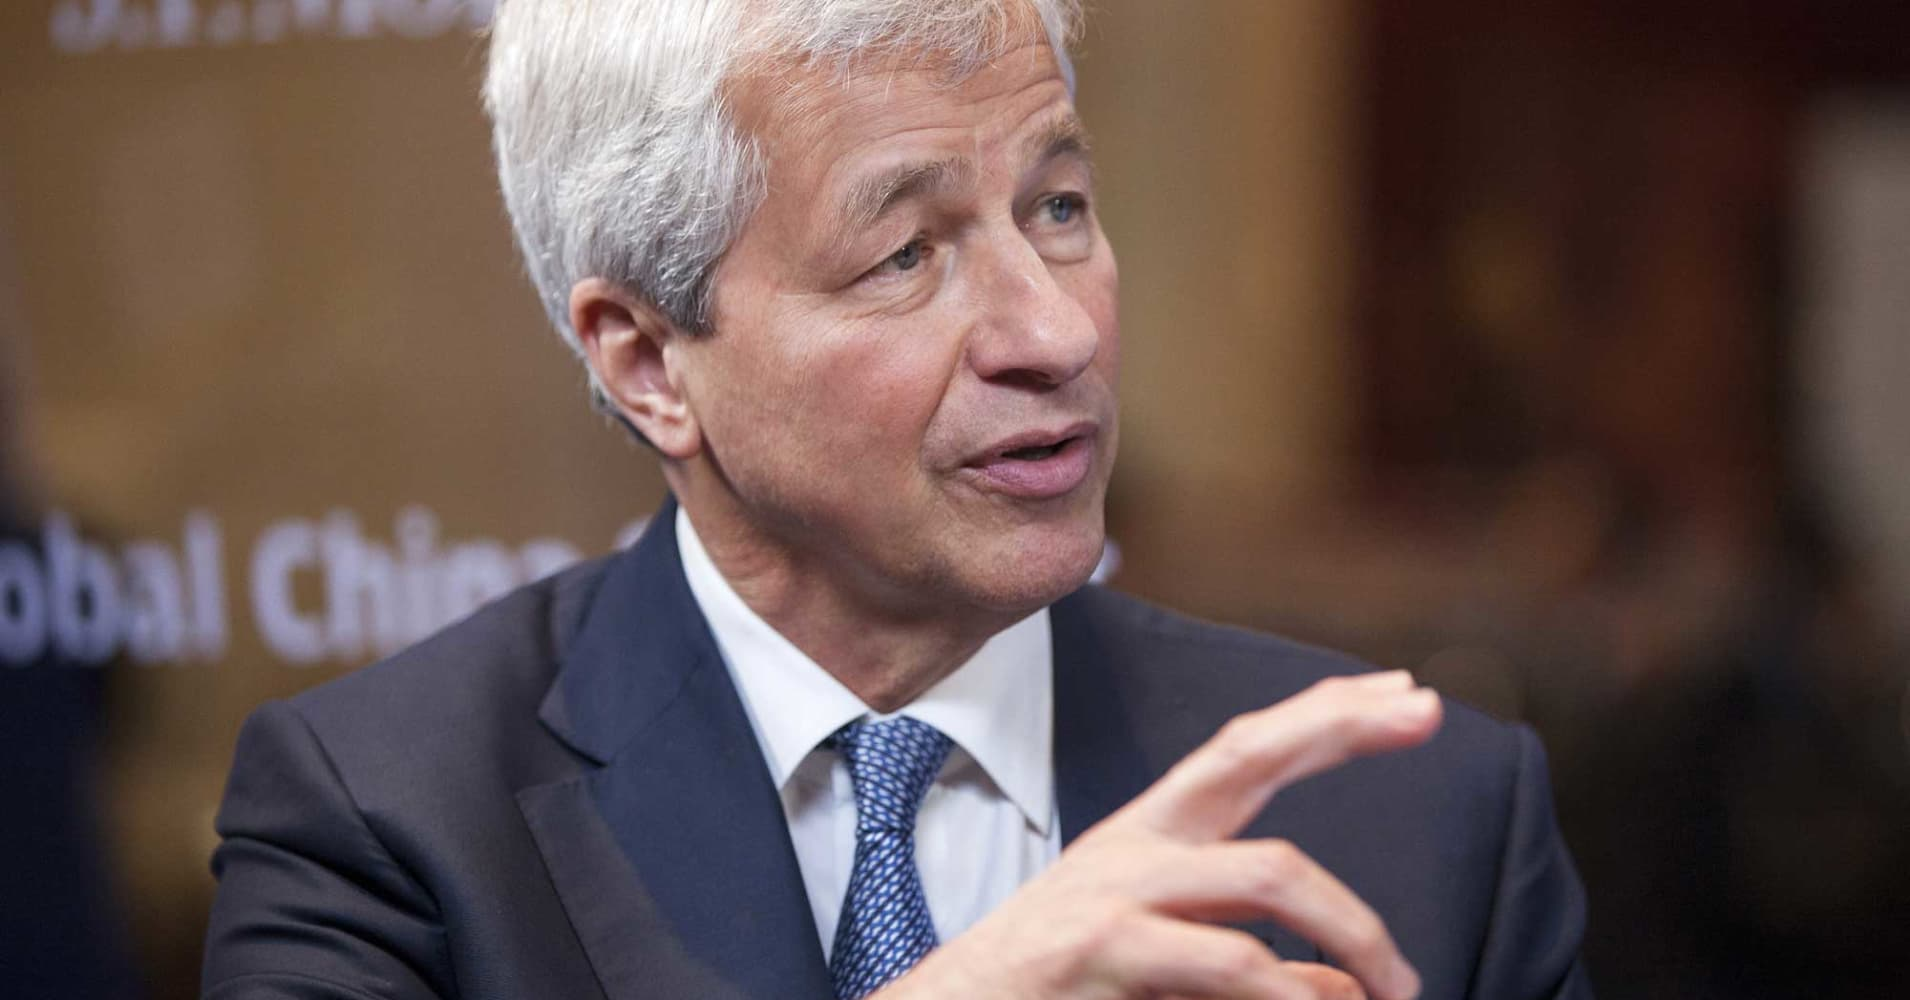 Jpmorgan Jamie Dimon On Tax Reform We Have To Do This